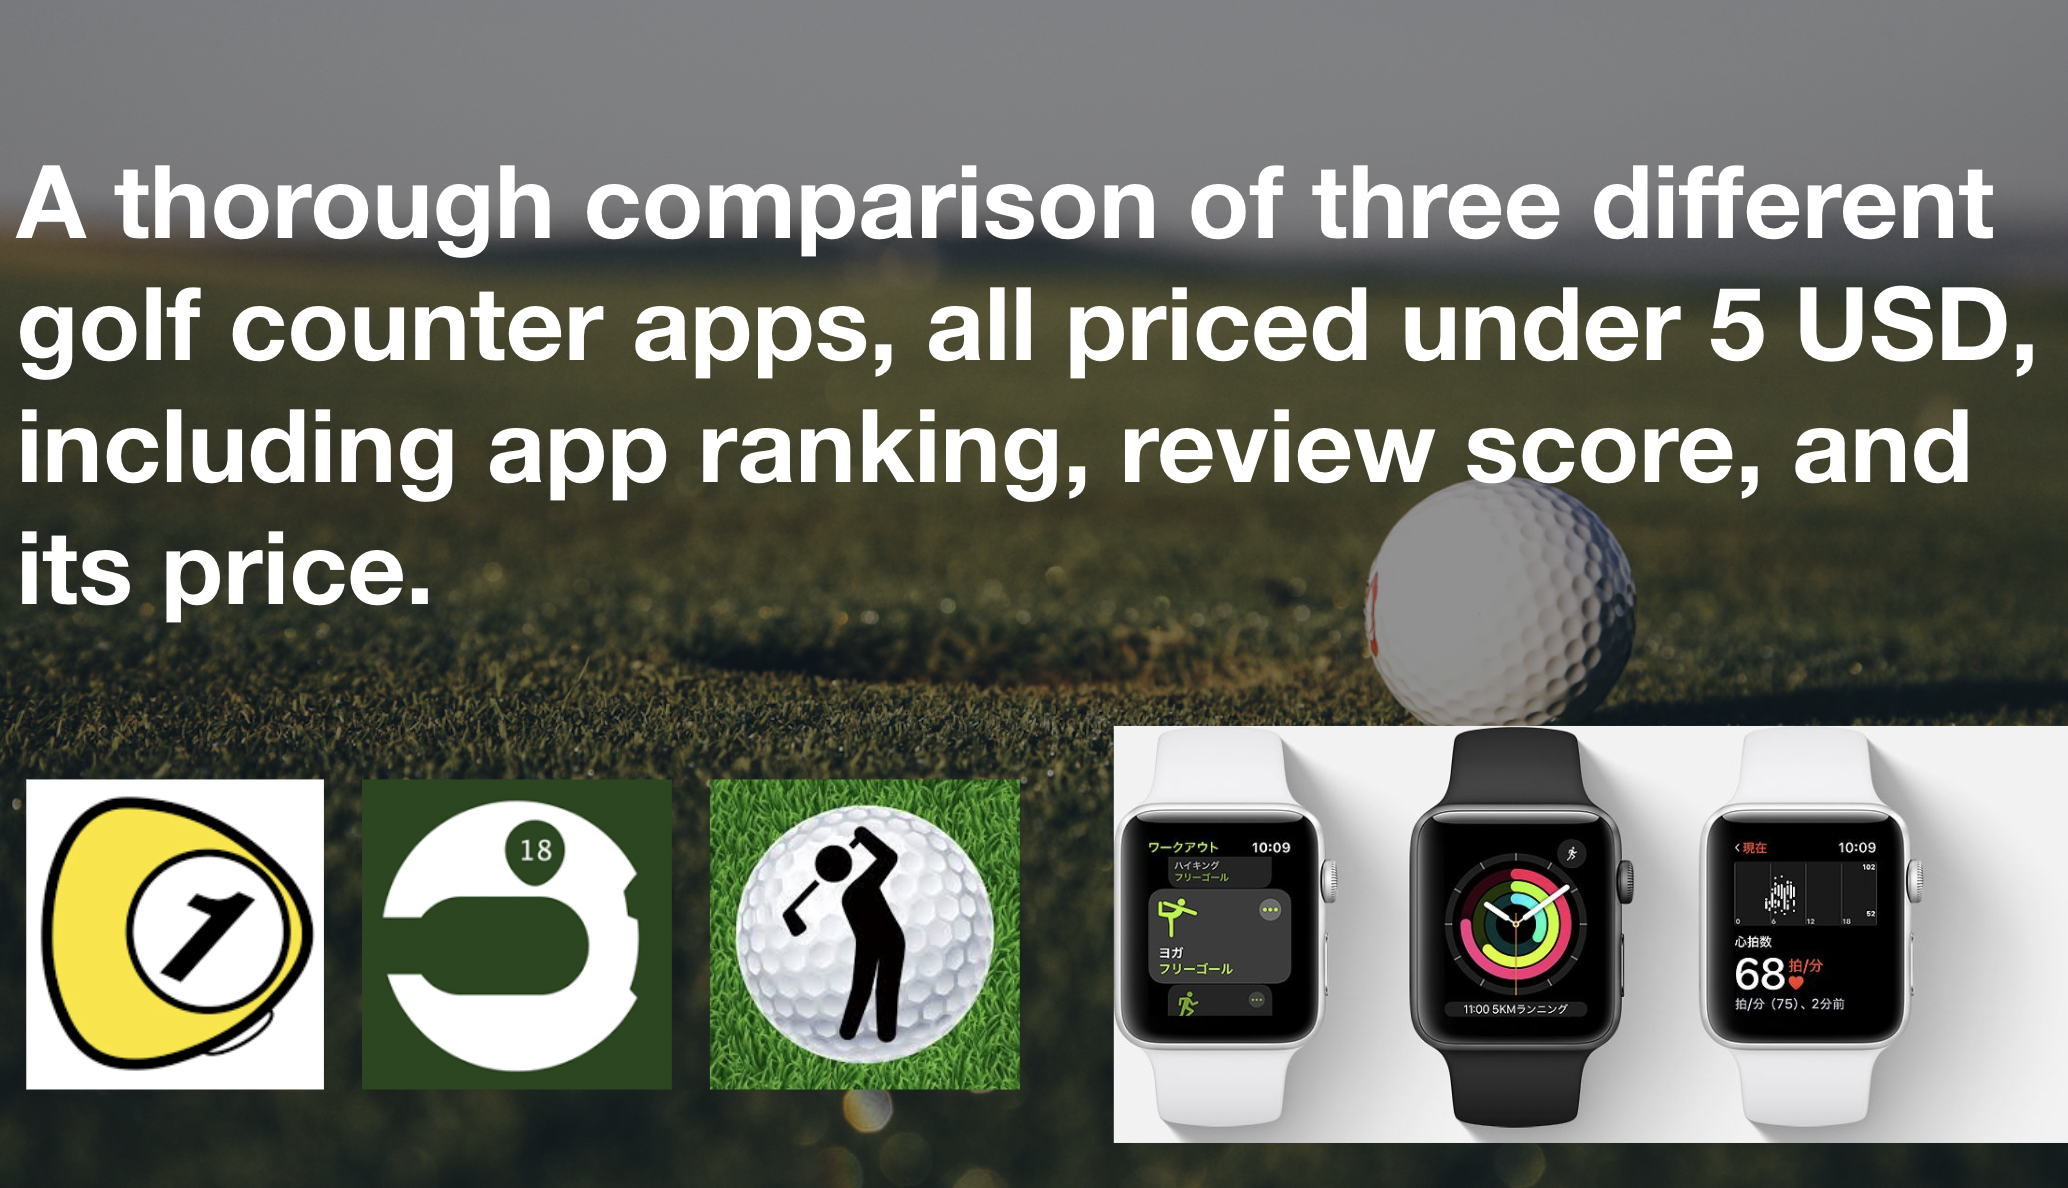 golfScoreCounterDotcom_A thorough comparison of three different golf counter apps, all priced under 10 USD, including app ranking, review score, and its price.